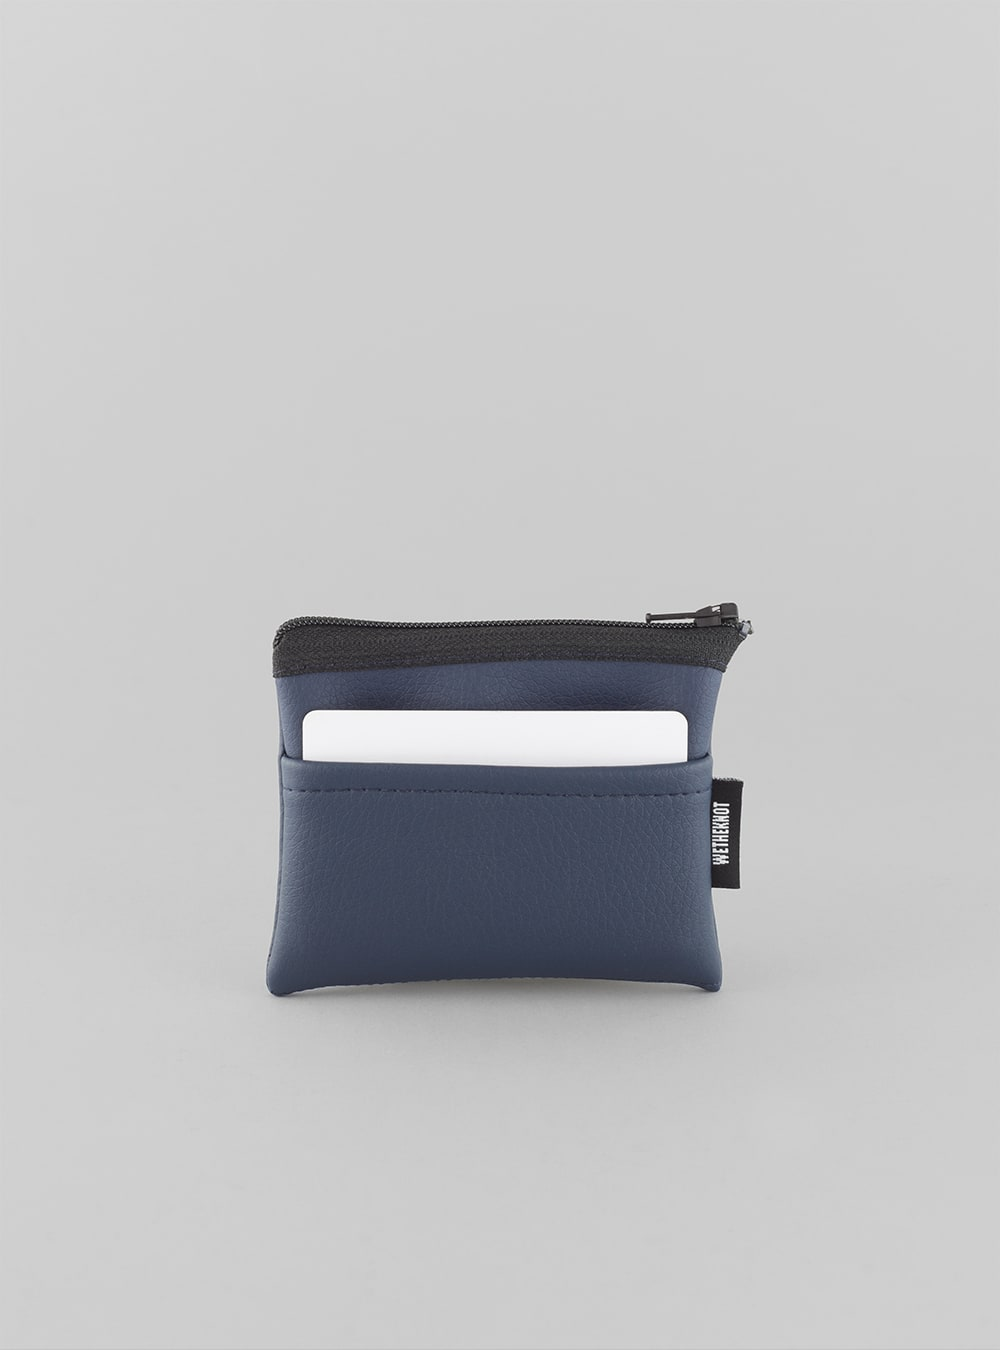 Card holder (dark blue) in vegan leather, made in Portugal by wetheknot.